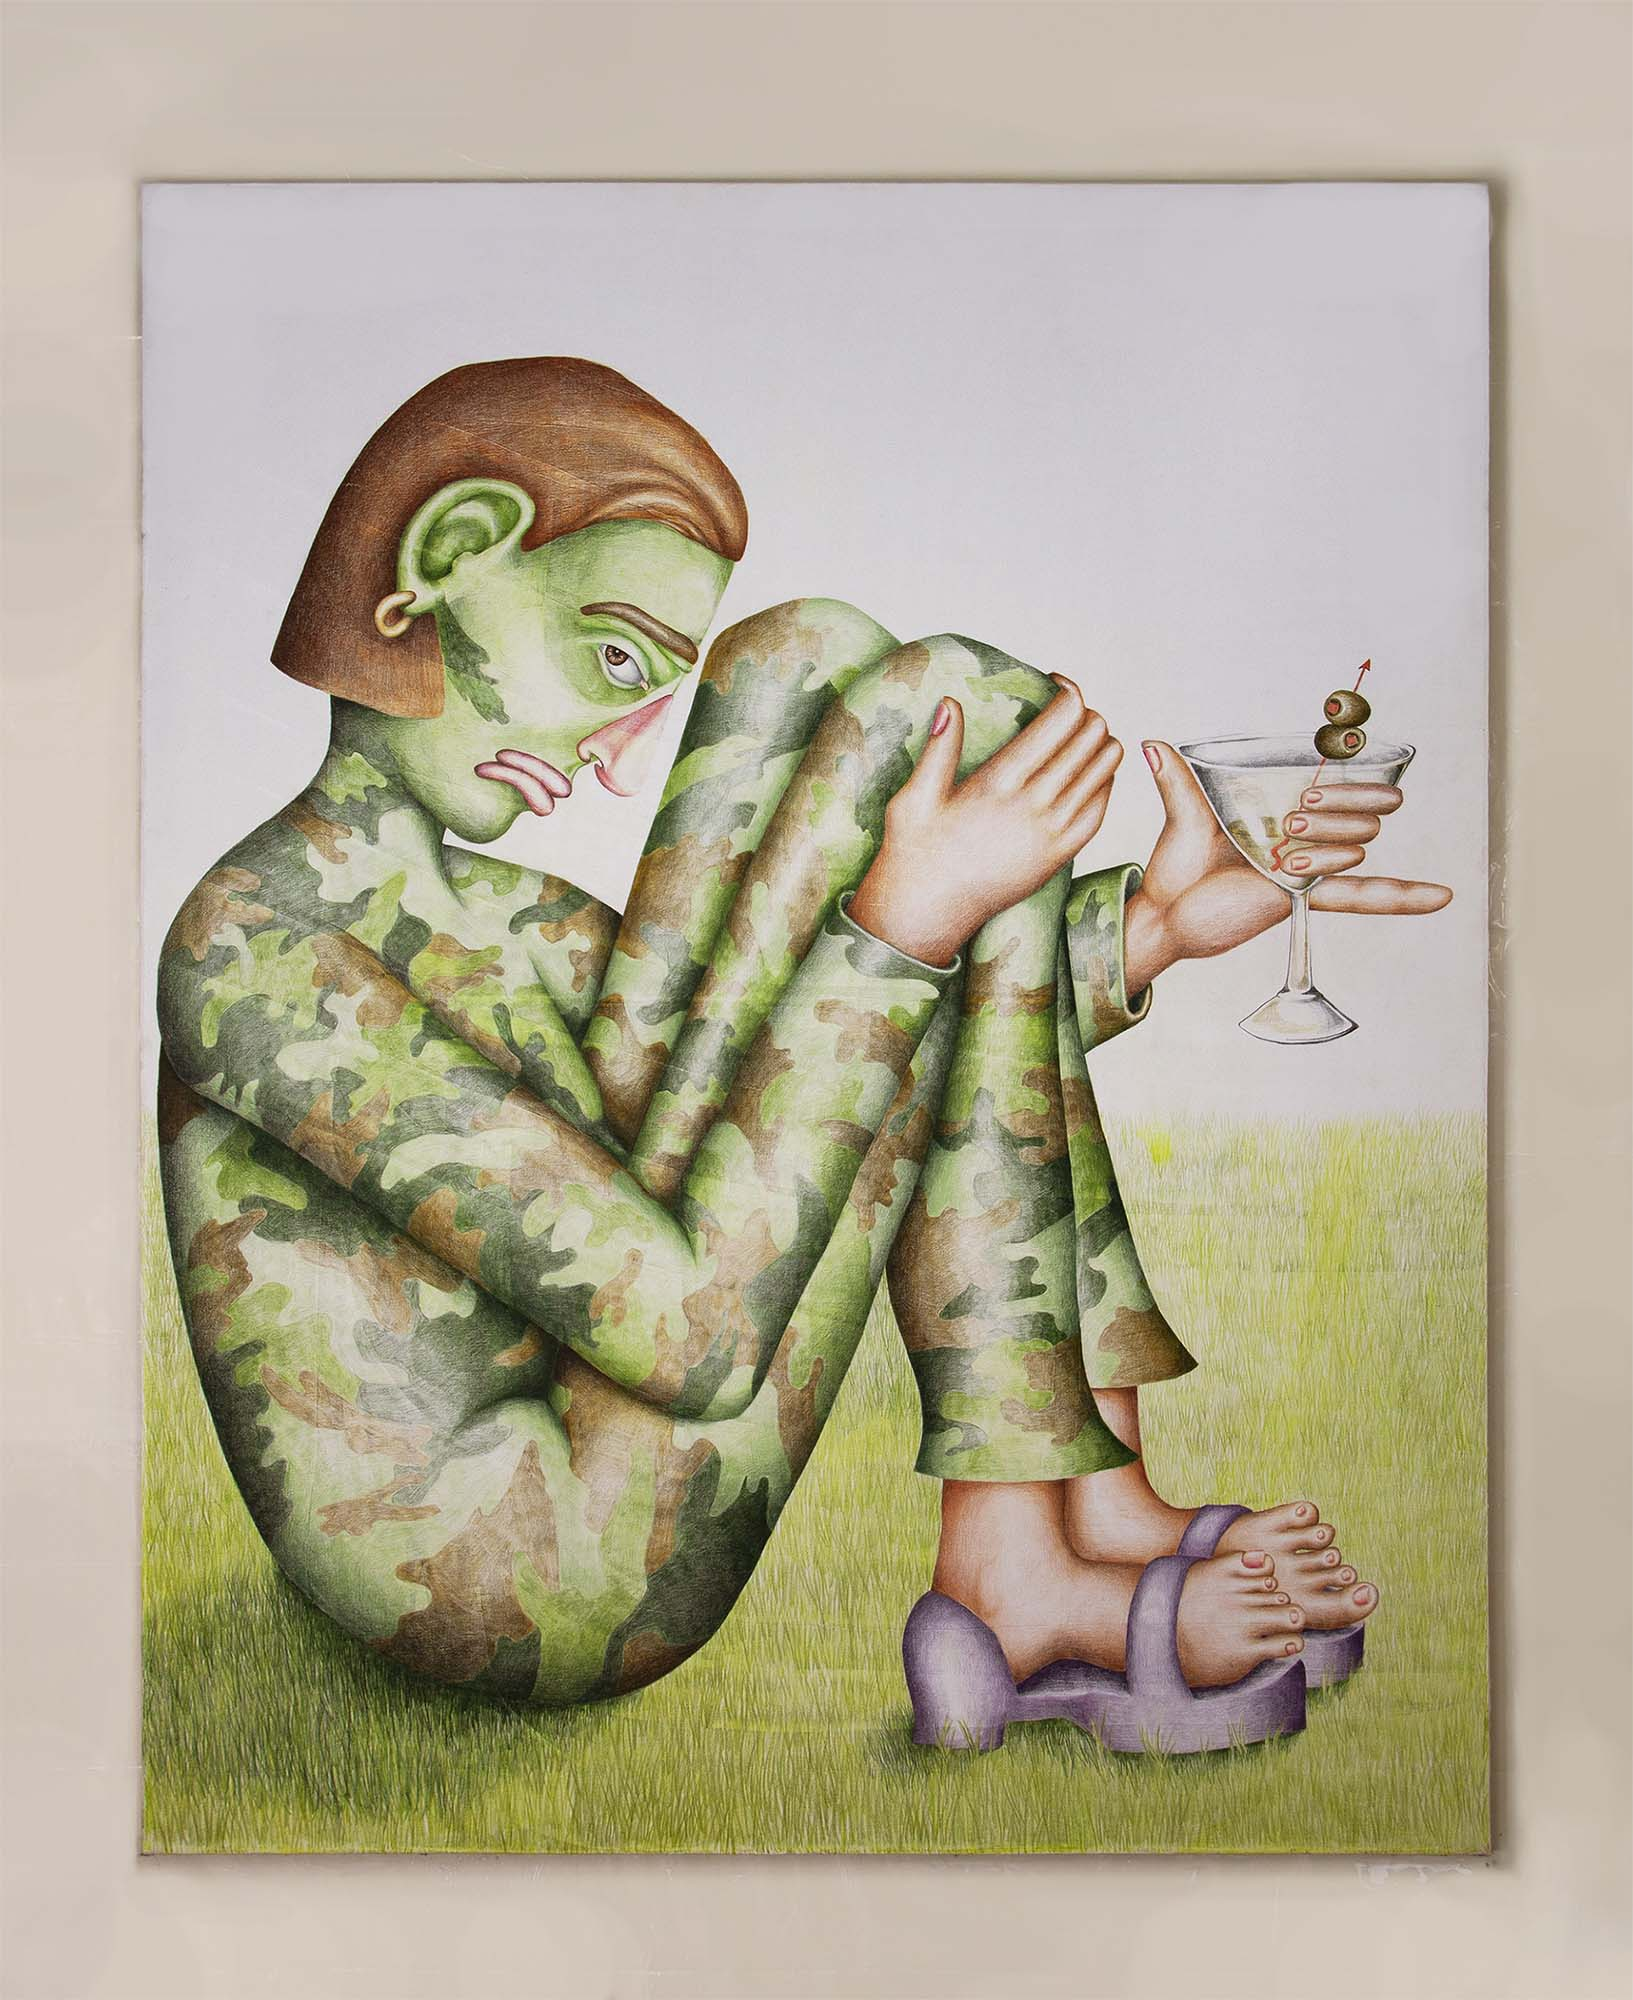 Samantha Rosenwald, Party of One, 2018, colored pencil on canvas, 50x62